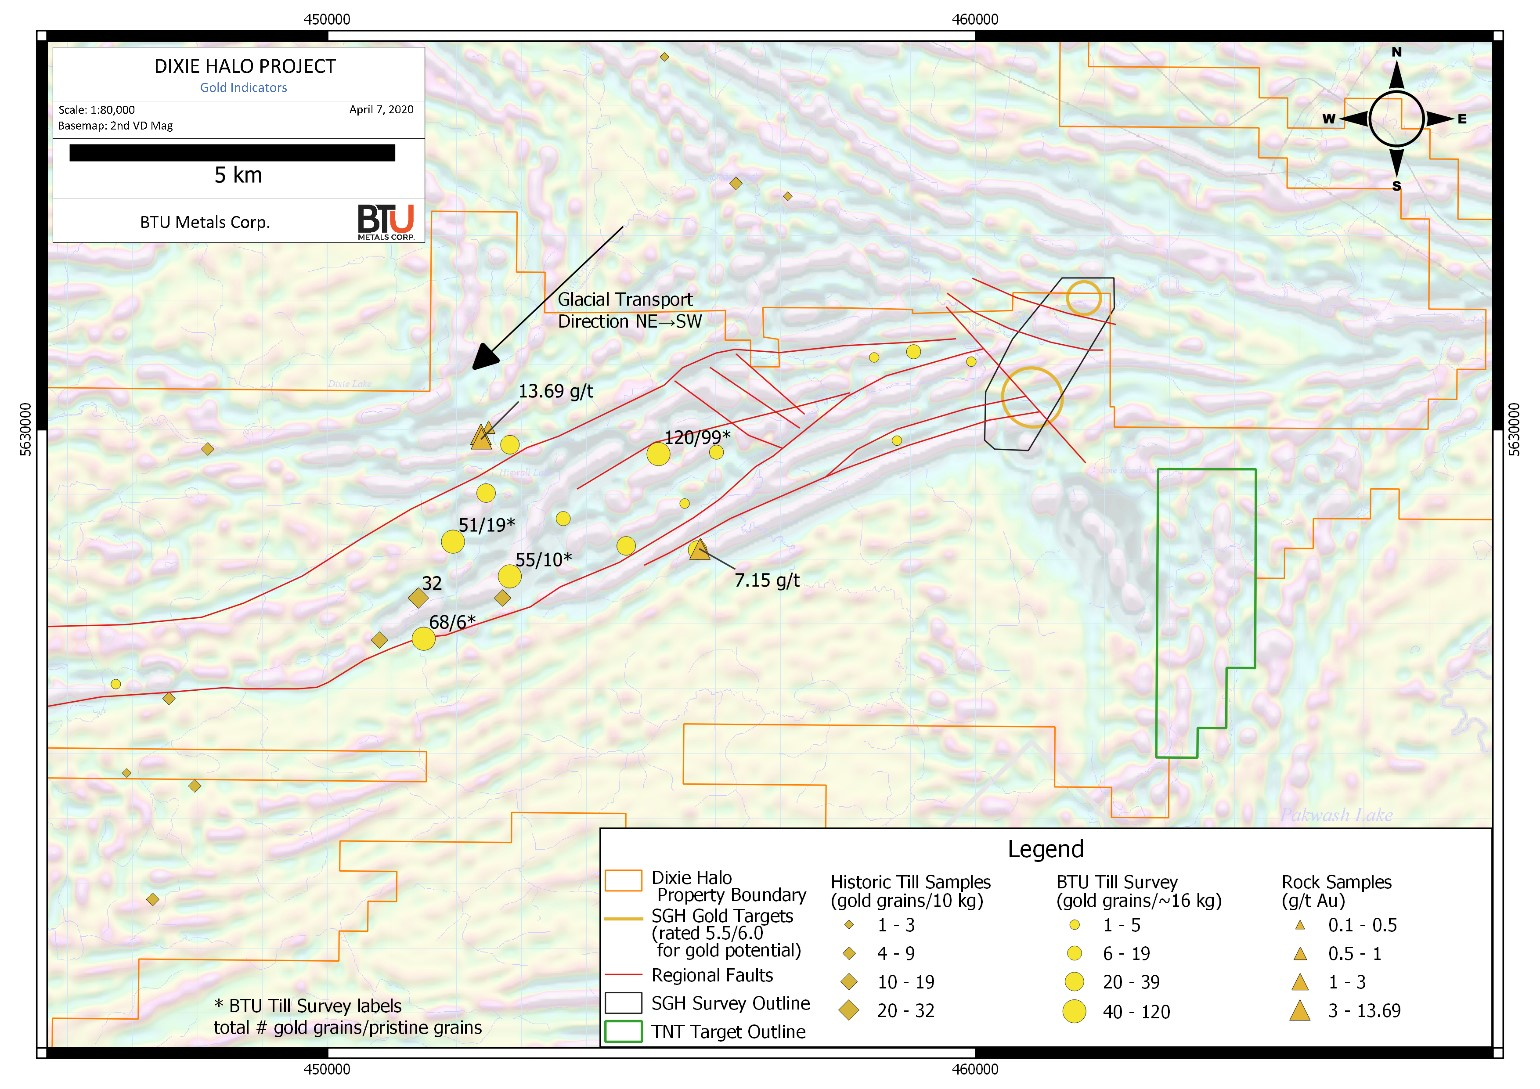 Figure 1: Surface indications of gold mineralization across BTU Metals' Dixie Halo Property